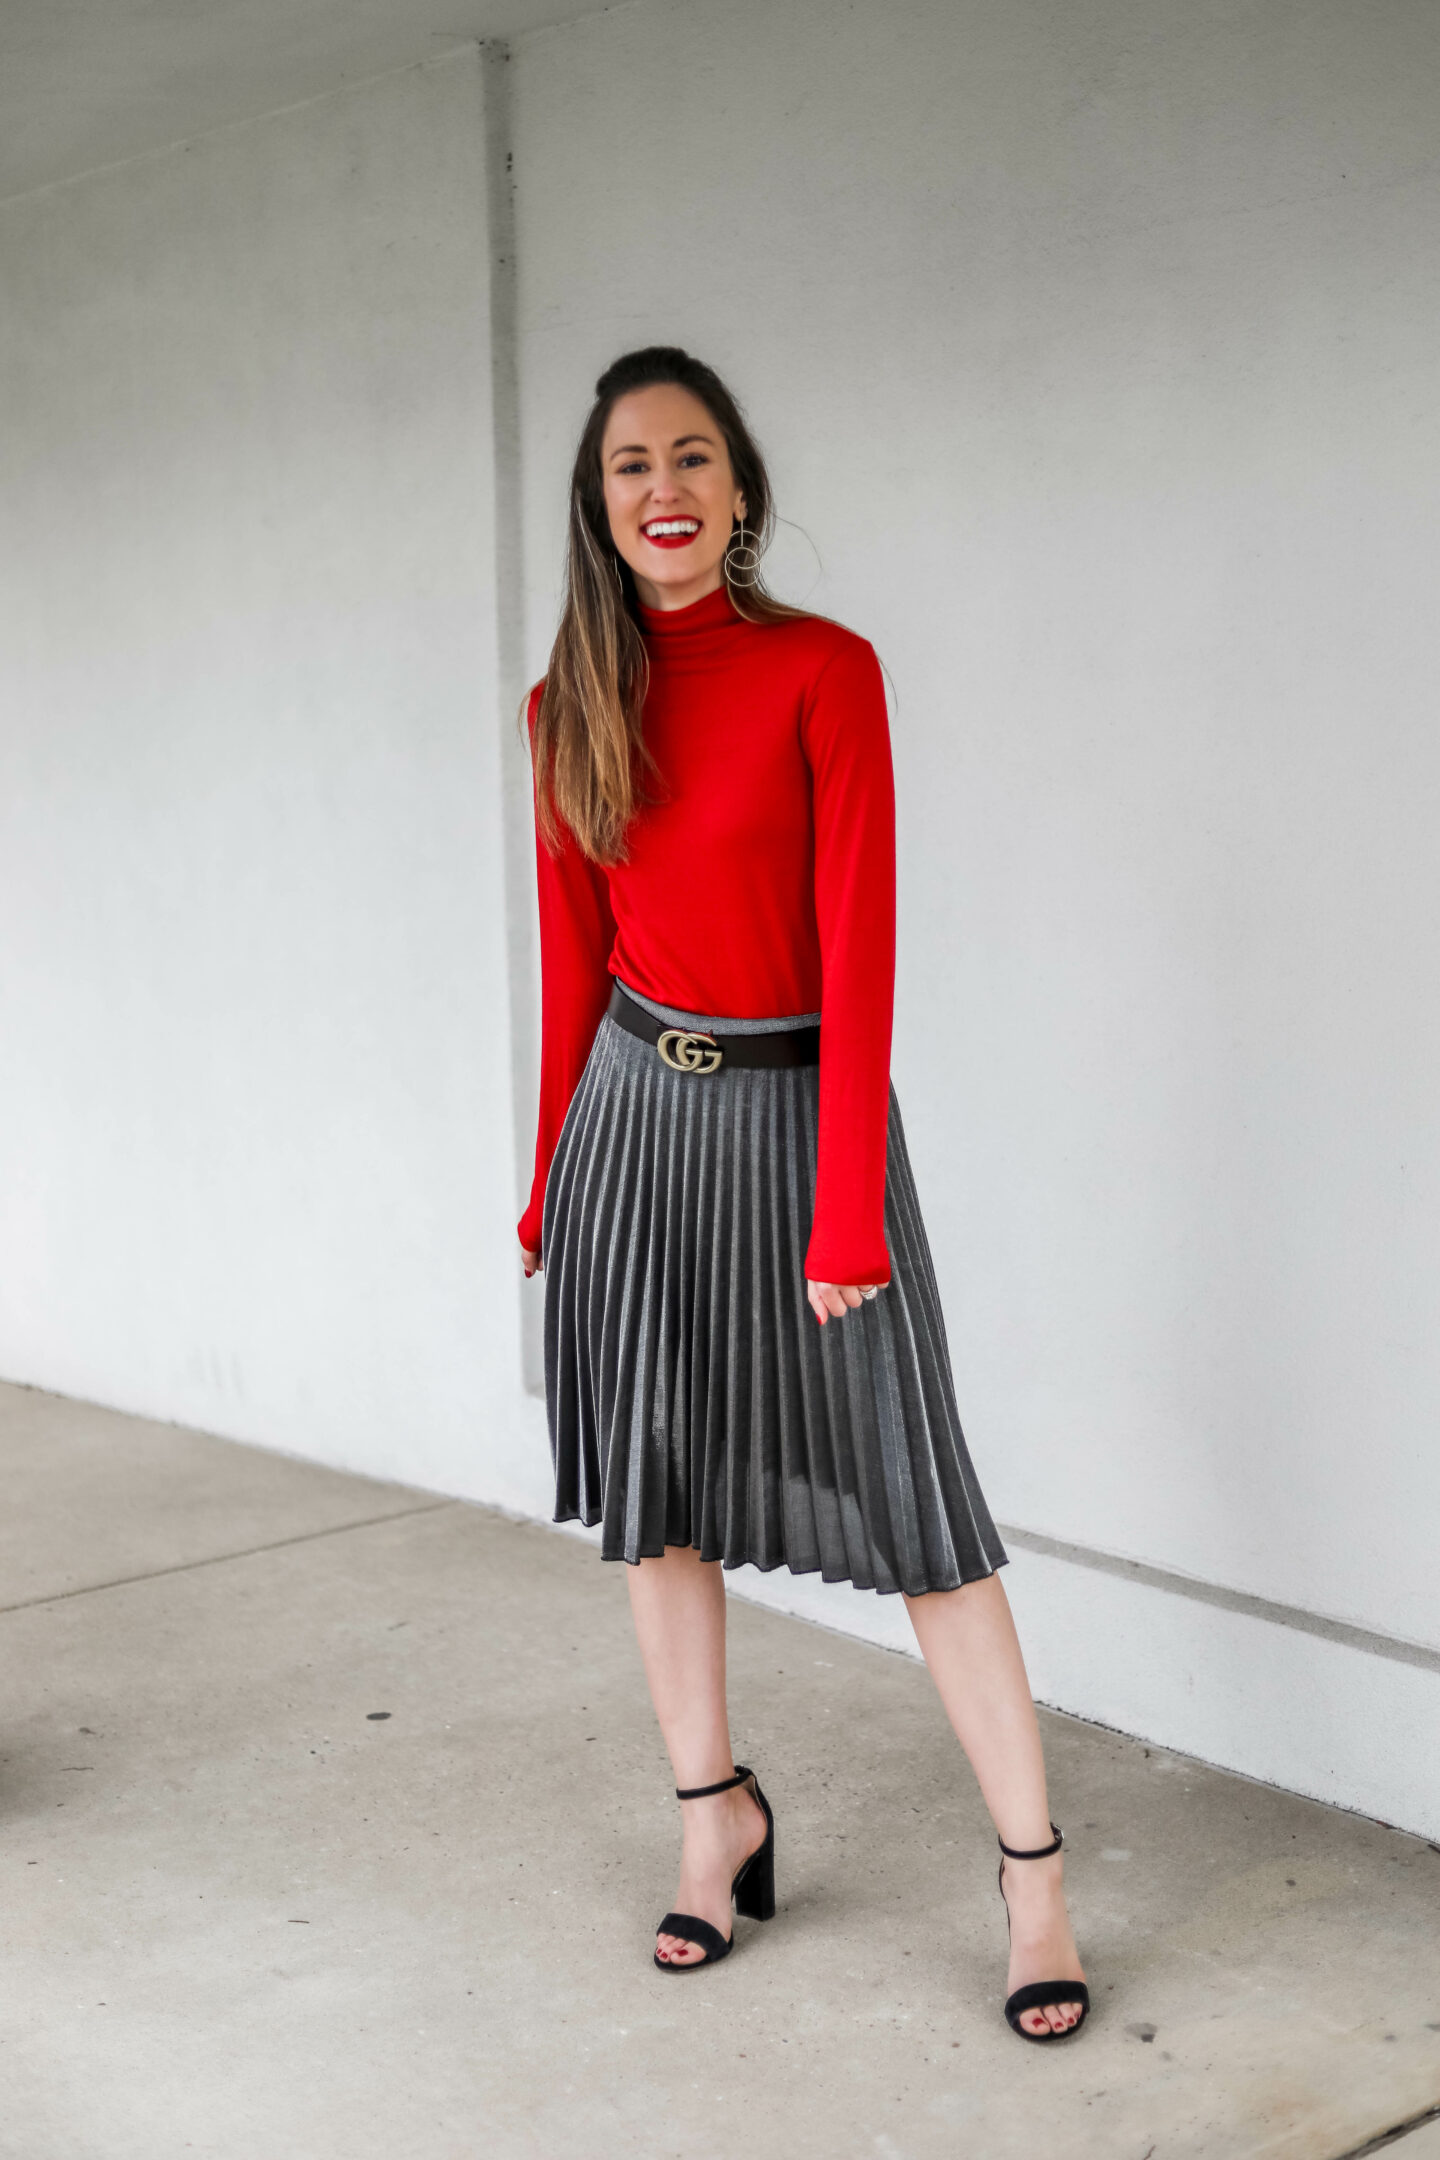 AFFORDABLE HOLIDAY LOOK - Pleated Skirt Outfit from Target on Coming Up Roses